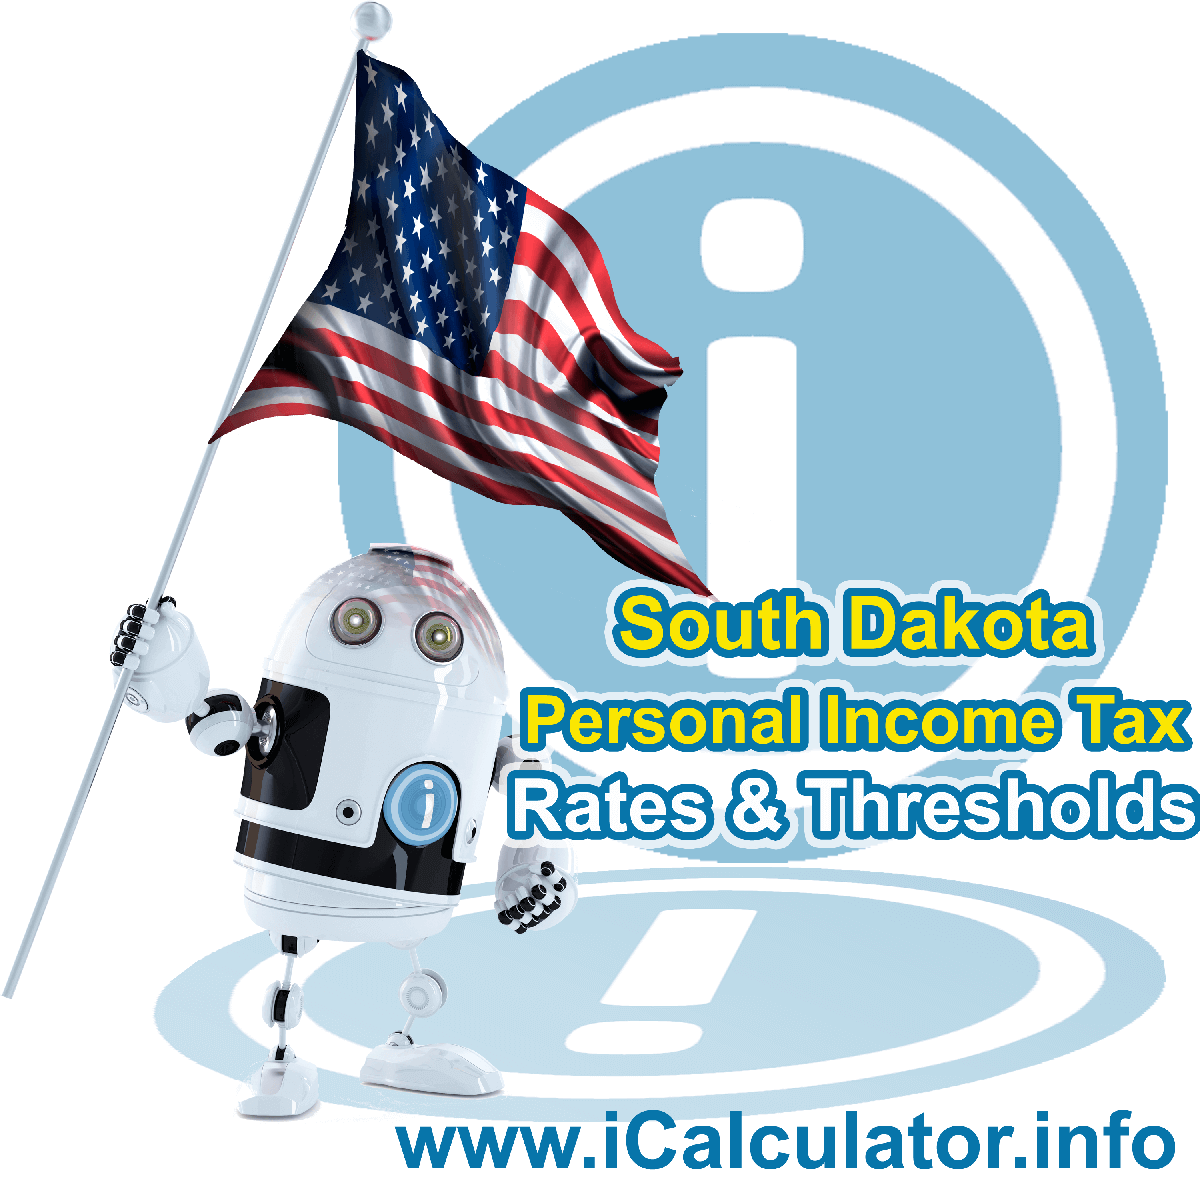 South Dakota State Tax Tables 2017. This image displays details of the South Dakota State Tax Tables for the 2017 tax return year which is provided in support of the 2017 US Tax Calculator